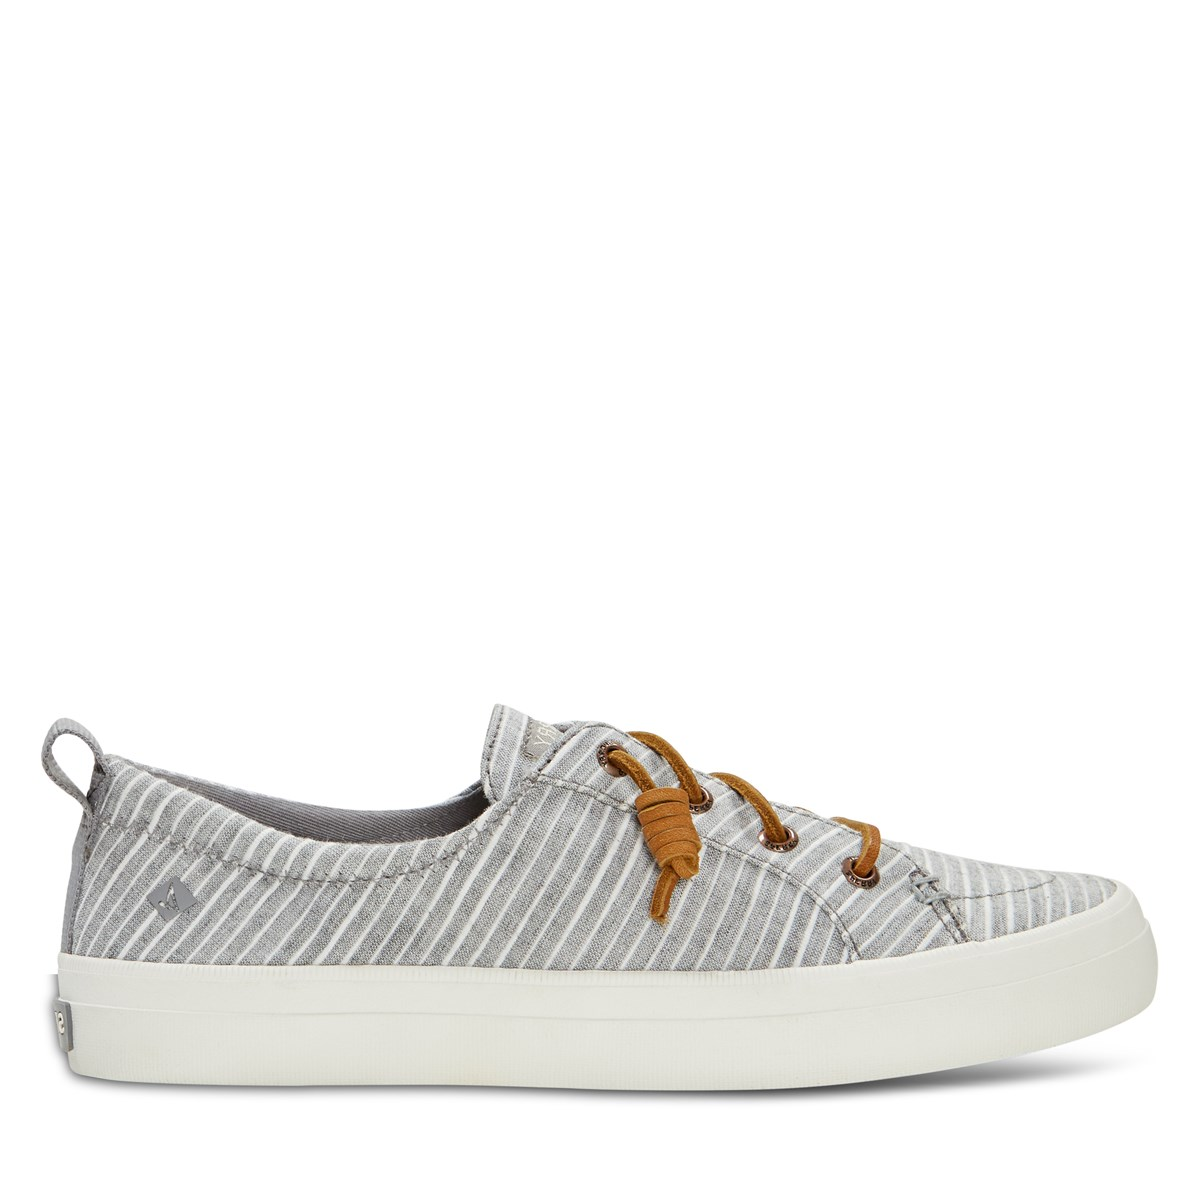 Women's Crest Vibe Sneakers in Grey